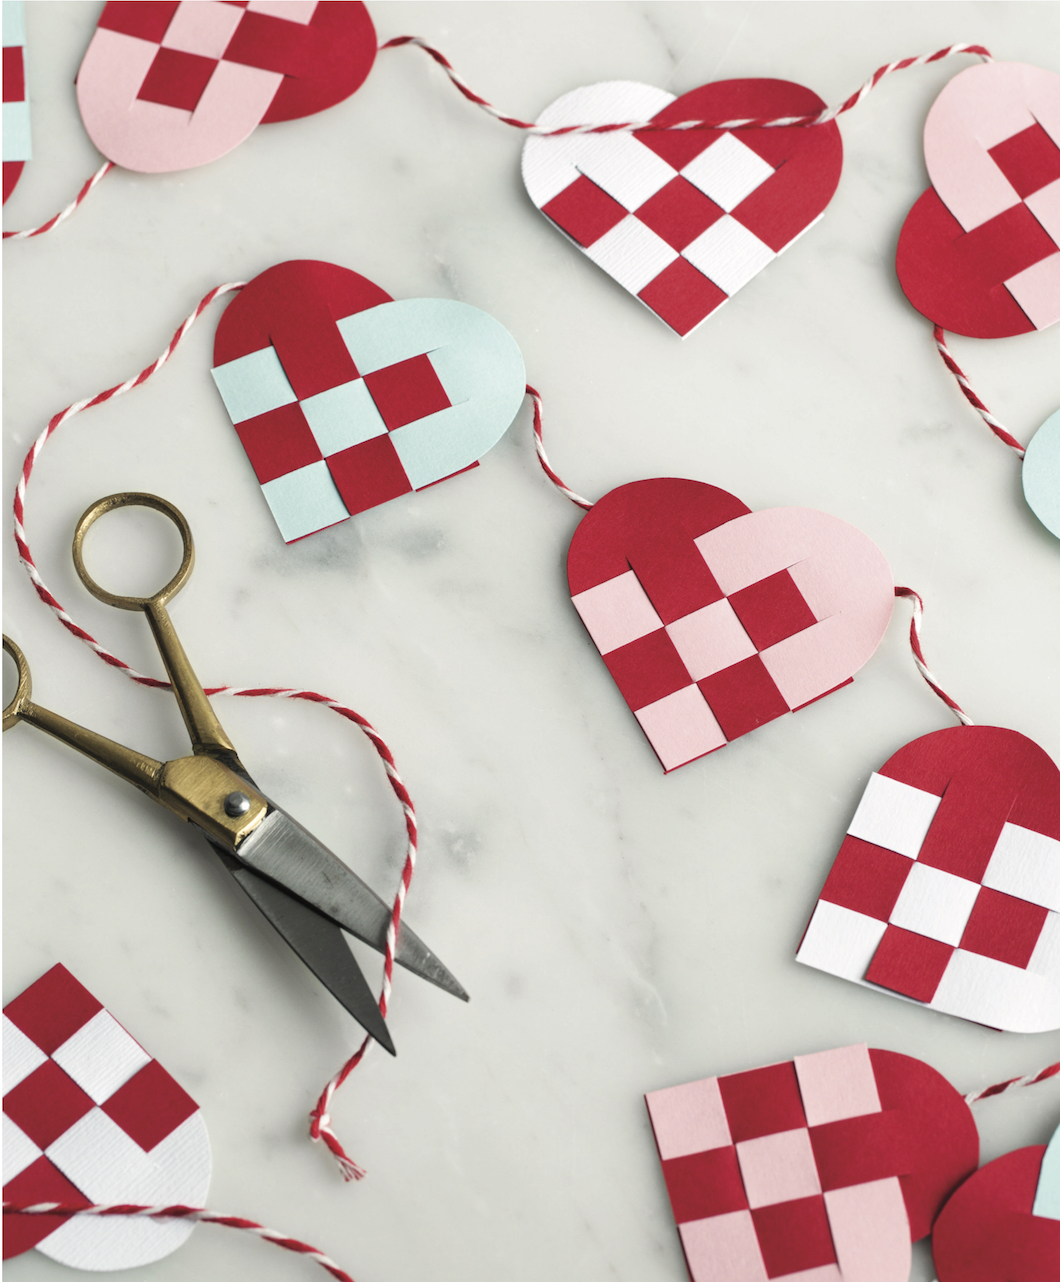 Scandinavian Gatherings_Mini Danish Heart Garland_Photography by Charity Burggraaf